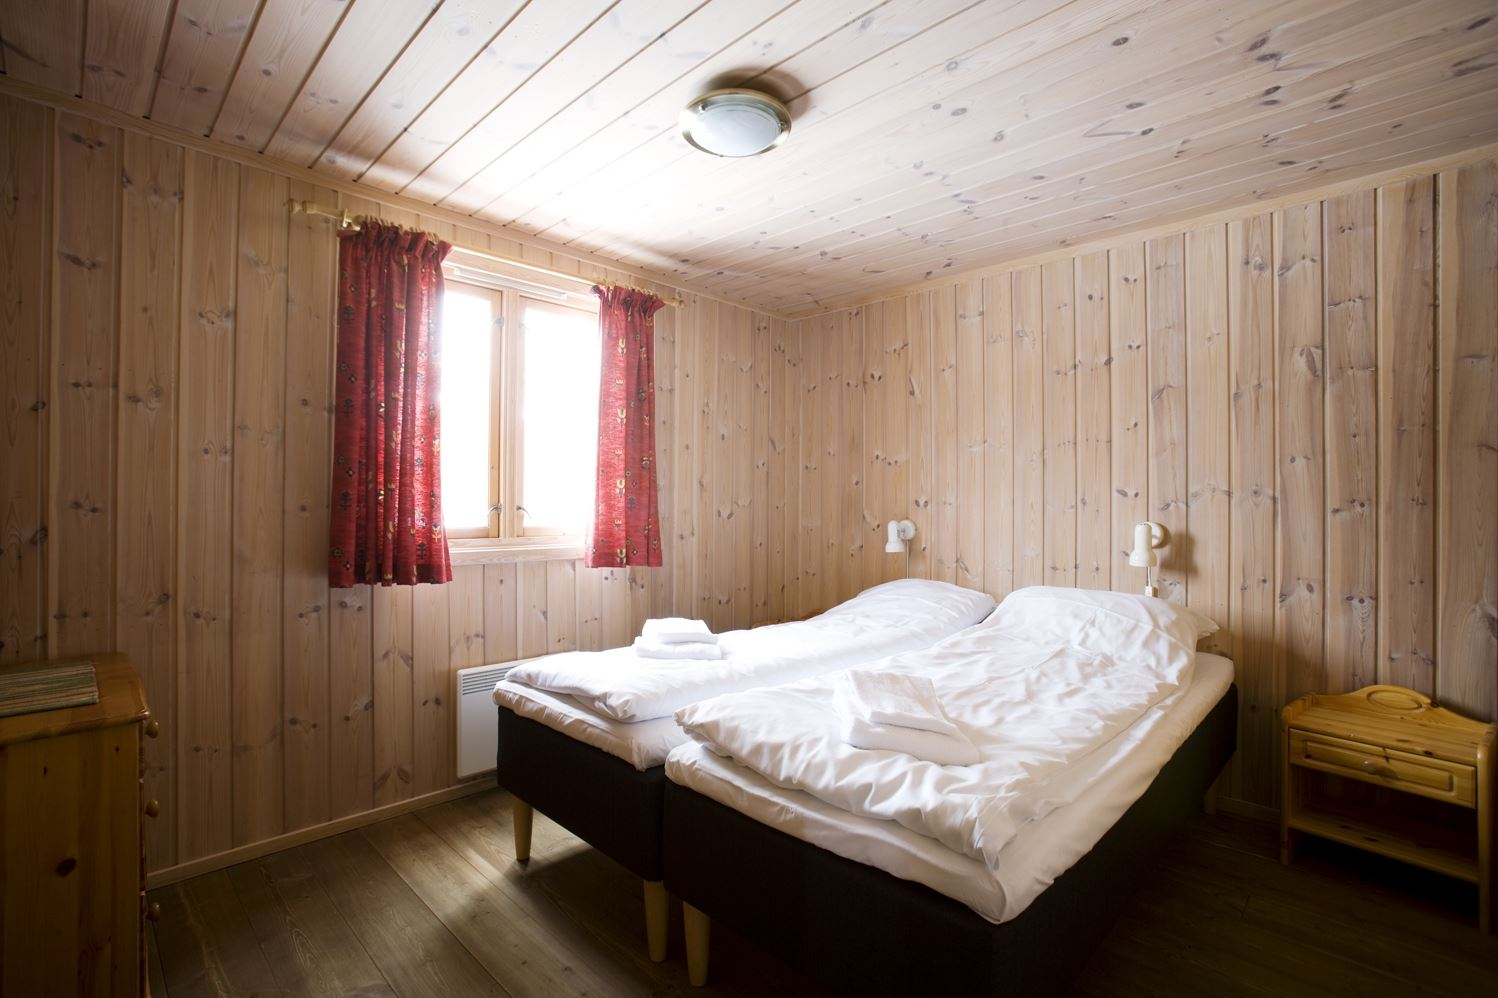 Soverom 1.etg. 10sengs/12sengs hytter / Bedroom ground floor 10 and 12 bed Cabins